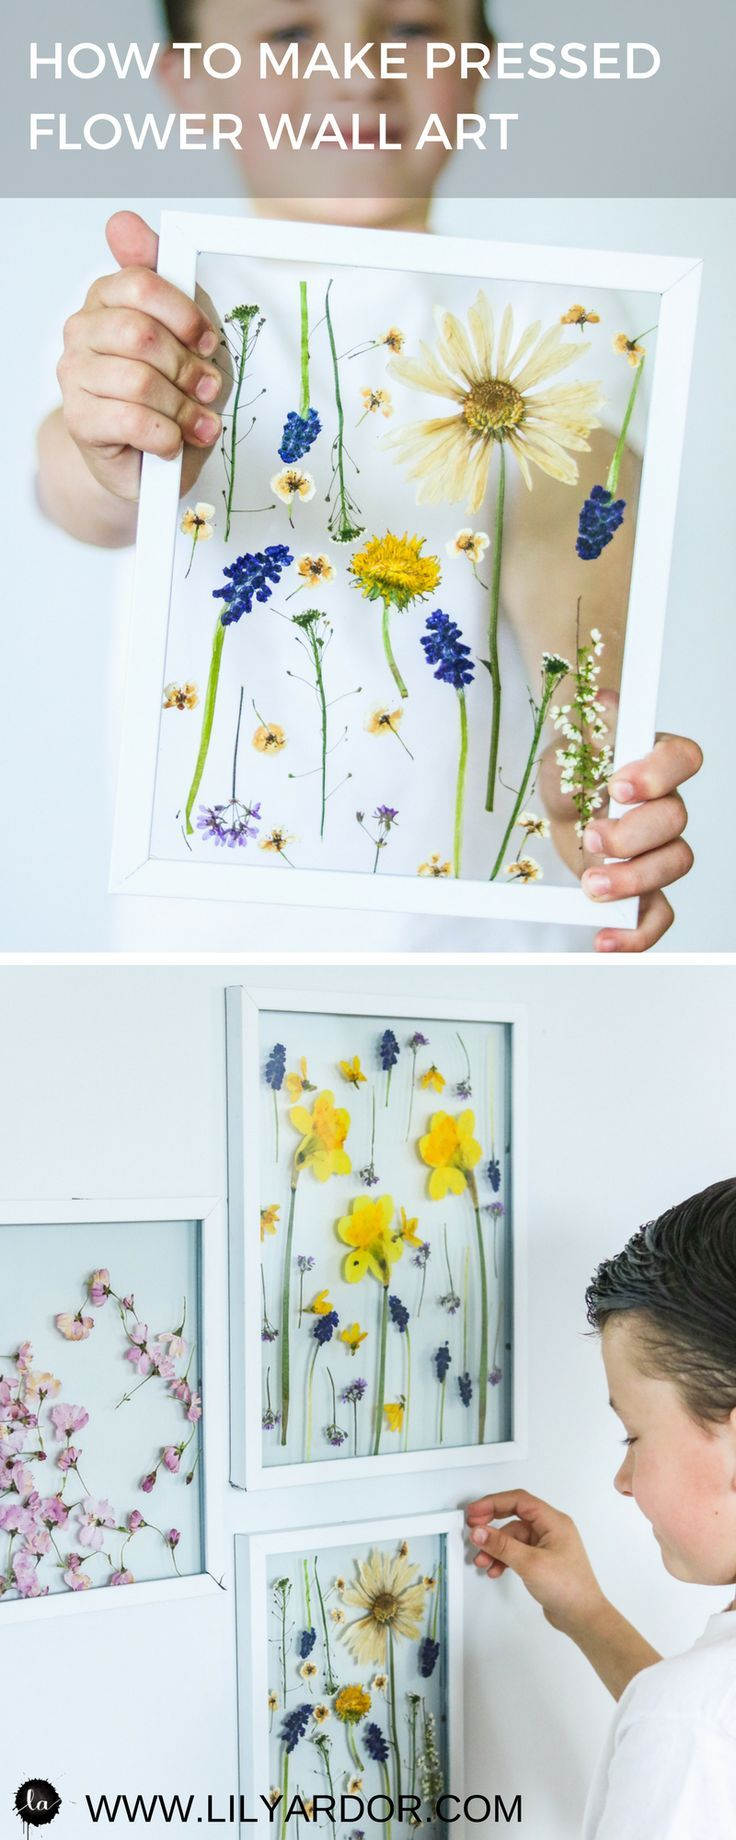 How to's : PRESSED FLOWER ART- Press flowers in 3 minutes - Mother's day gift ideas - Mother's day craft ideas